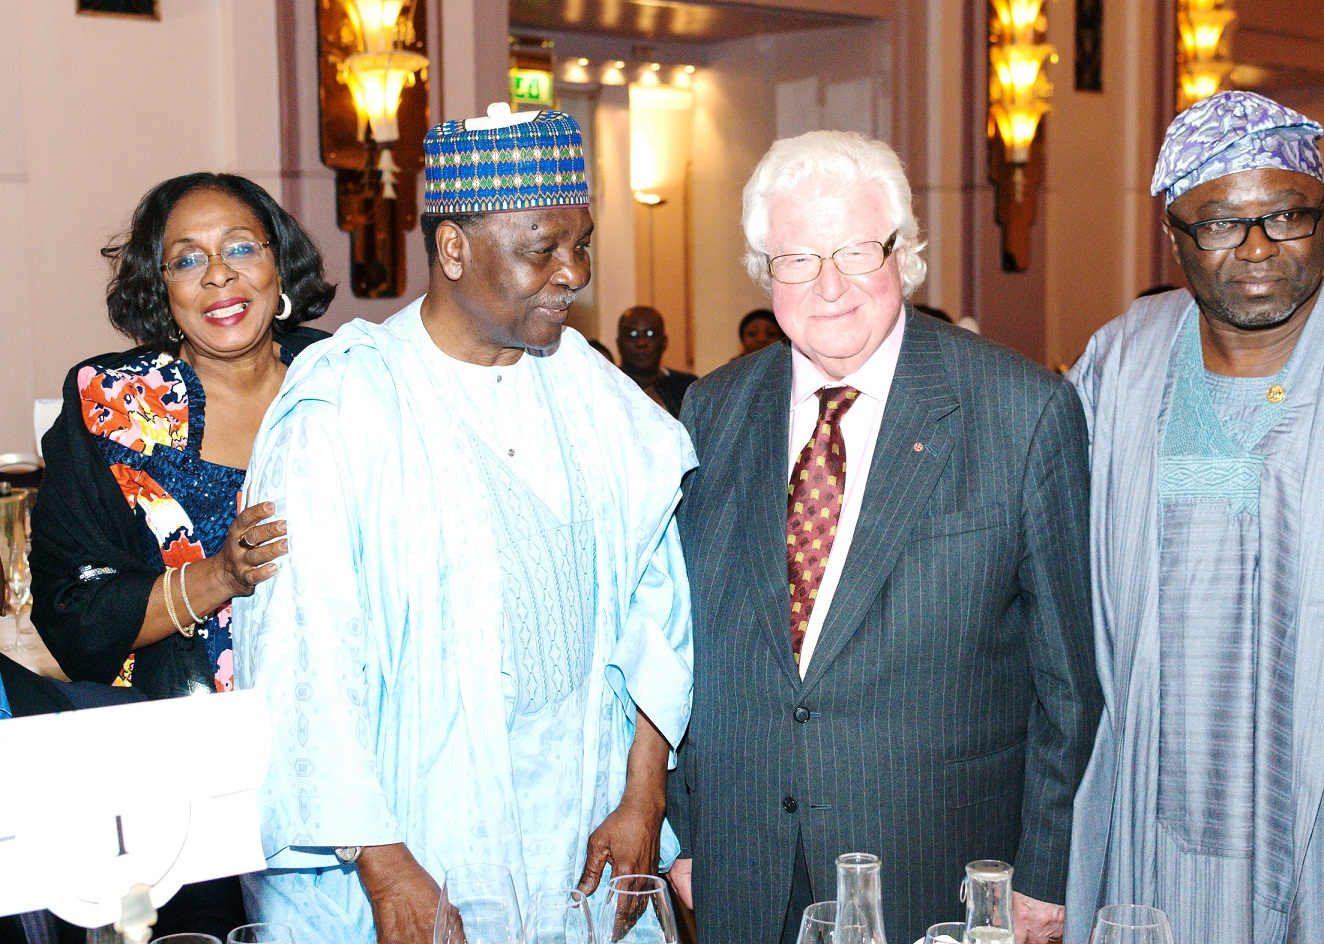 From left, Special Adviser to the Governor, State of Osun on Women Affairs and Social Welfare, Mrs Funmilayo Eso-Williams; Former Head of State, General Yakubu Gowon; Lord Watson of Richmond and Director General, Office of Economic Development & Partnerships State of Osun, Dr. Charles Akinola, during the Presentation of 2014 AD King Prize for Achievement in Public Service to Governor State of Osun, Ogbeni Rauf Aregbesola, at Commonwealth Observance Day in London.